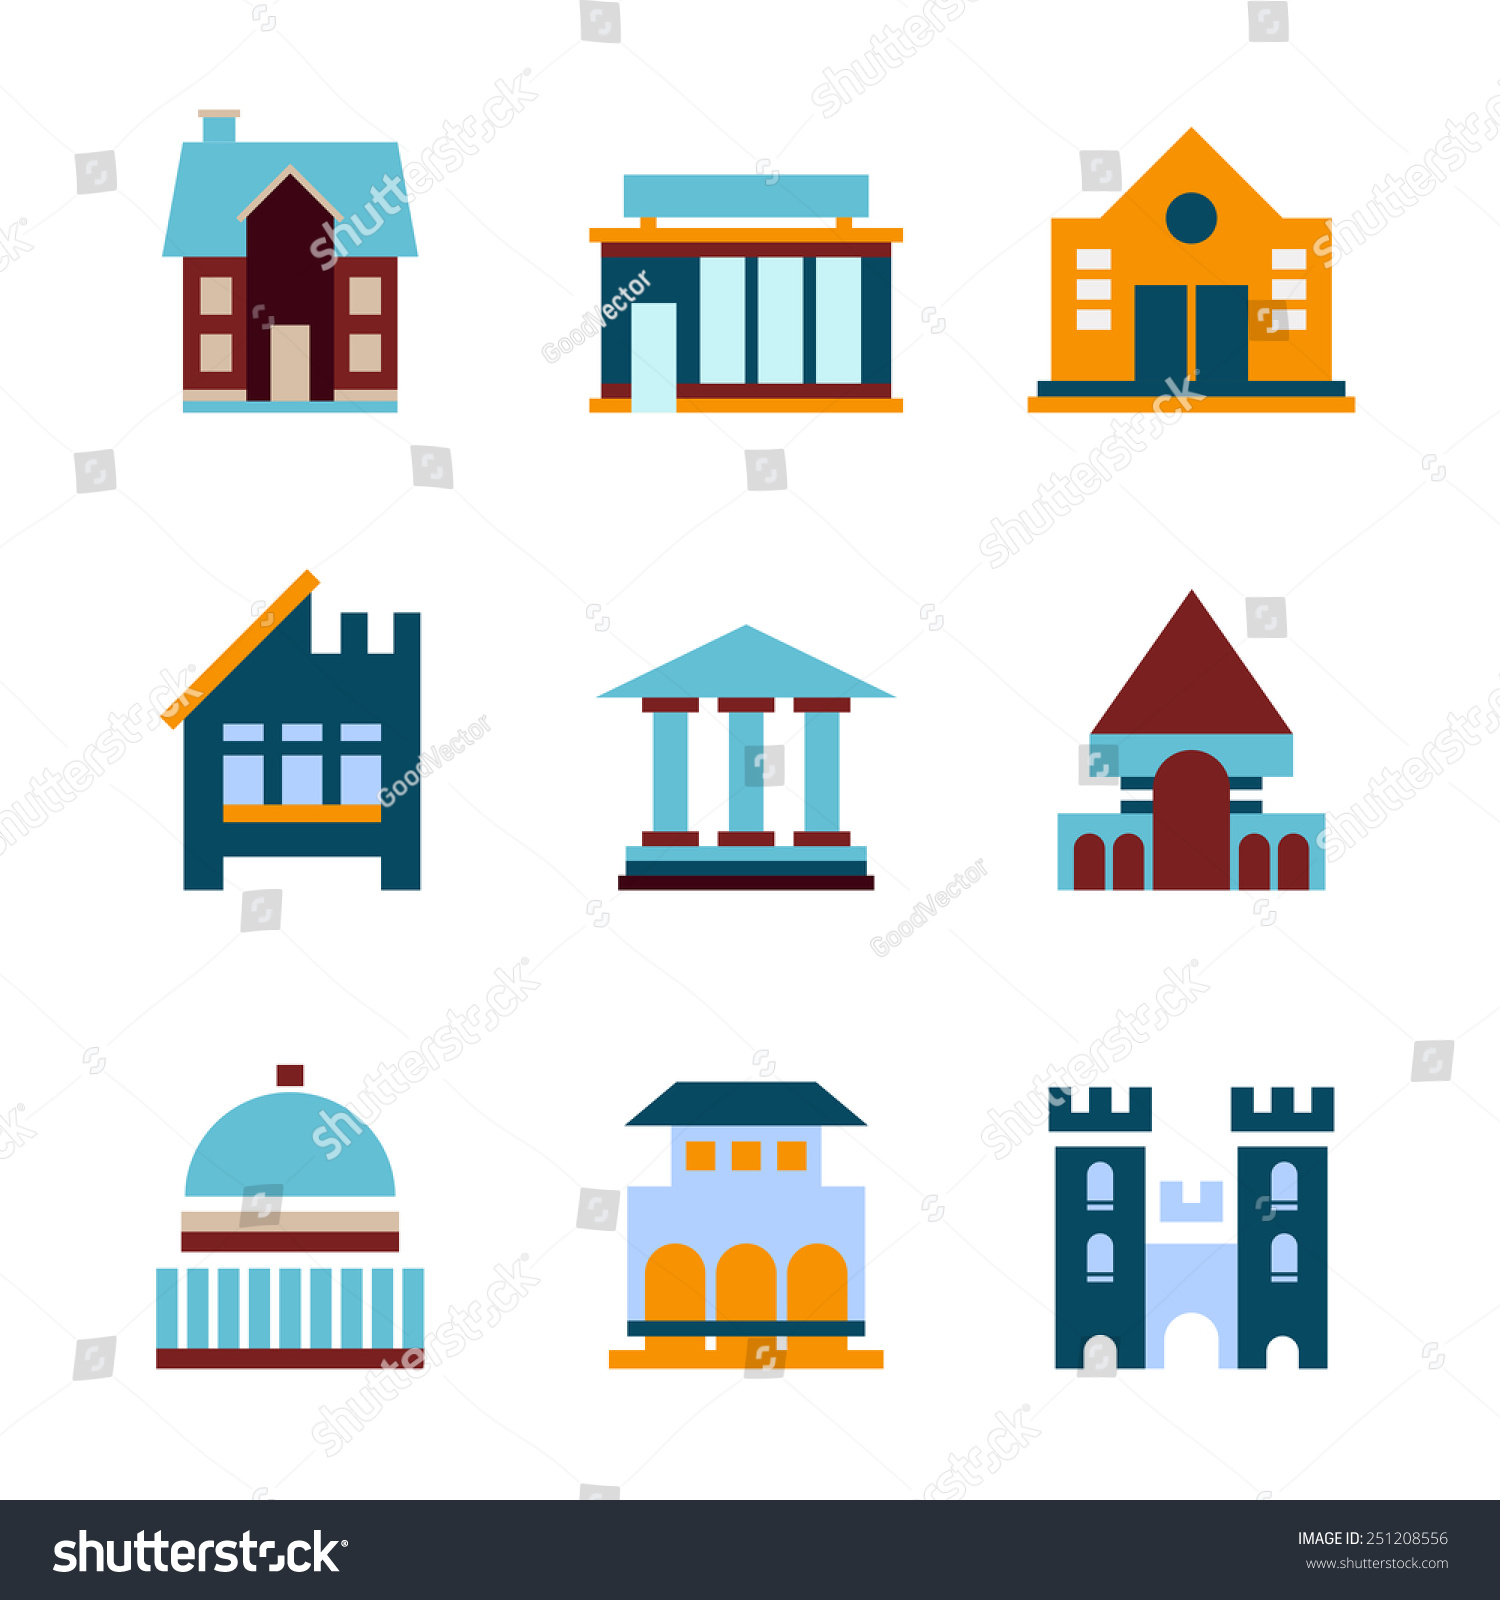 Building icon set abstract architecture icons stock vector for Architecture icon